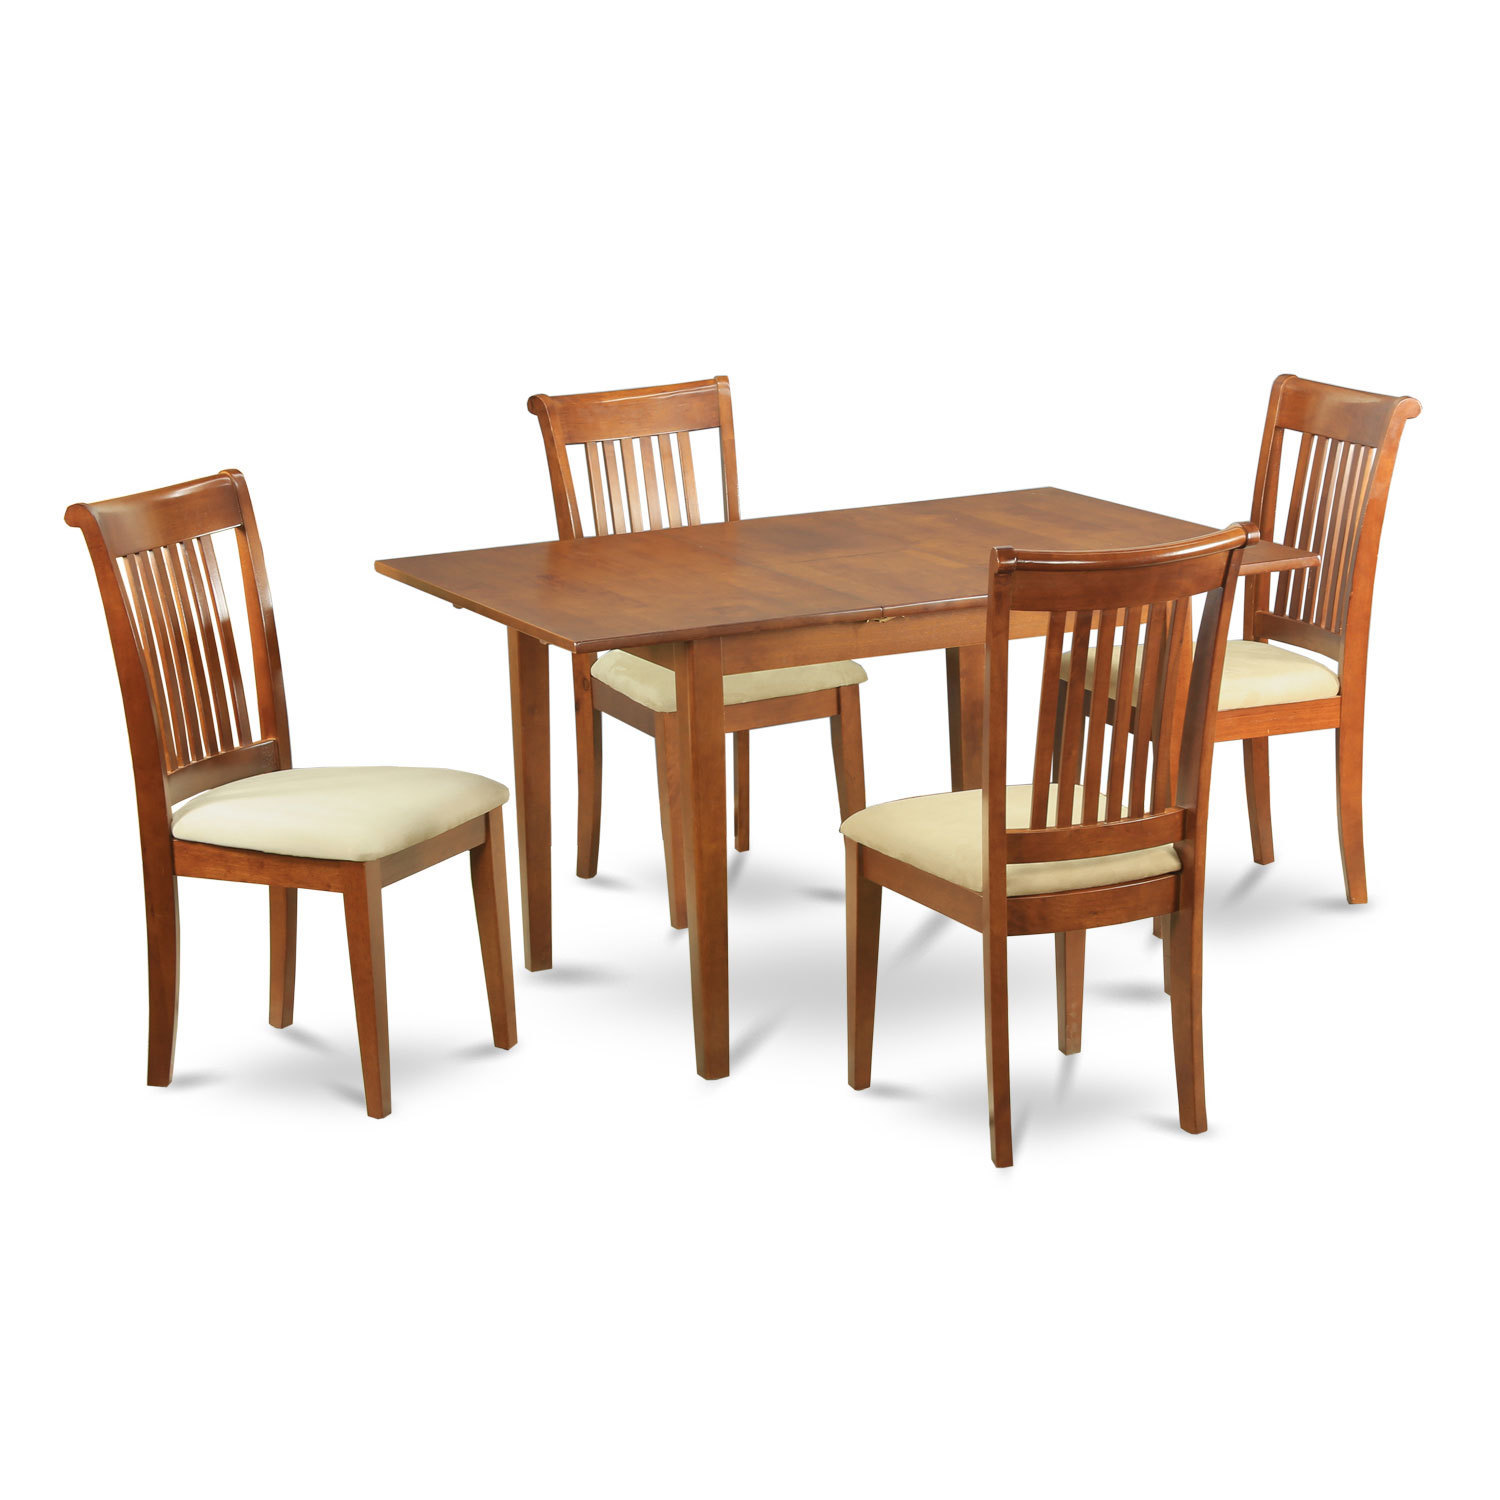 Small dinette set design homesfeed for Dining room table and 4 chairs